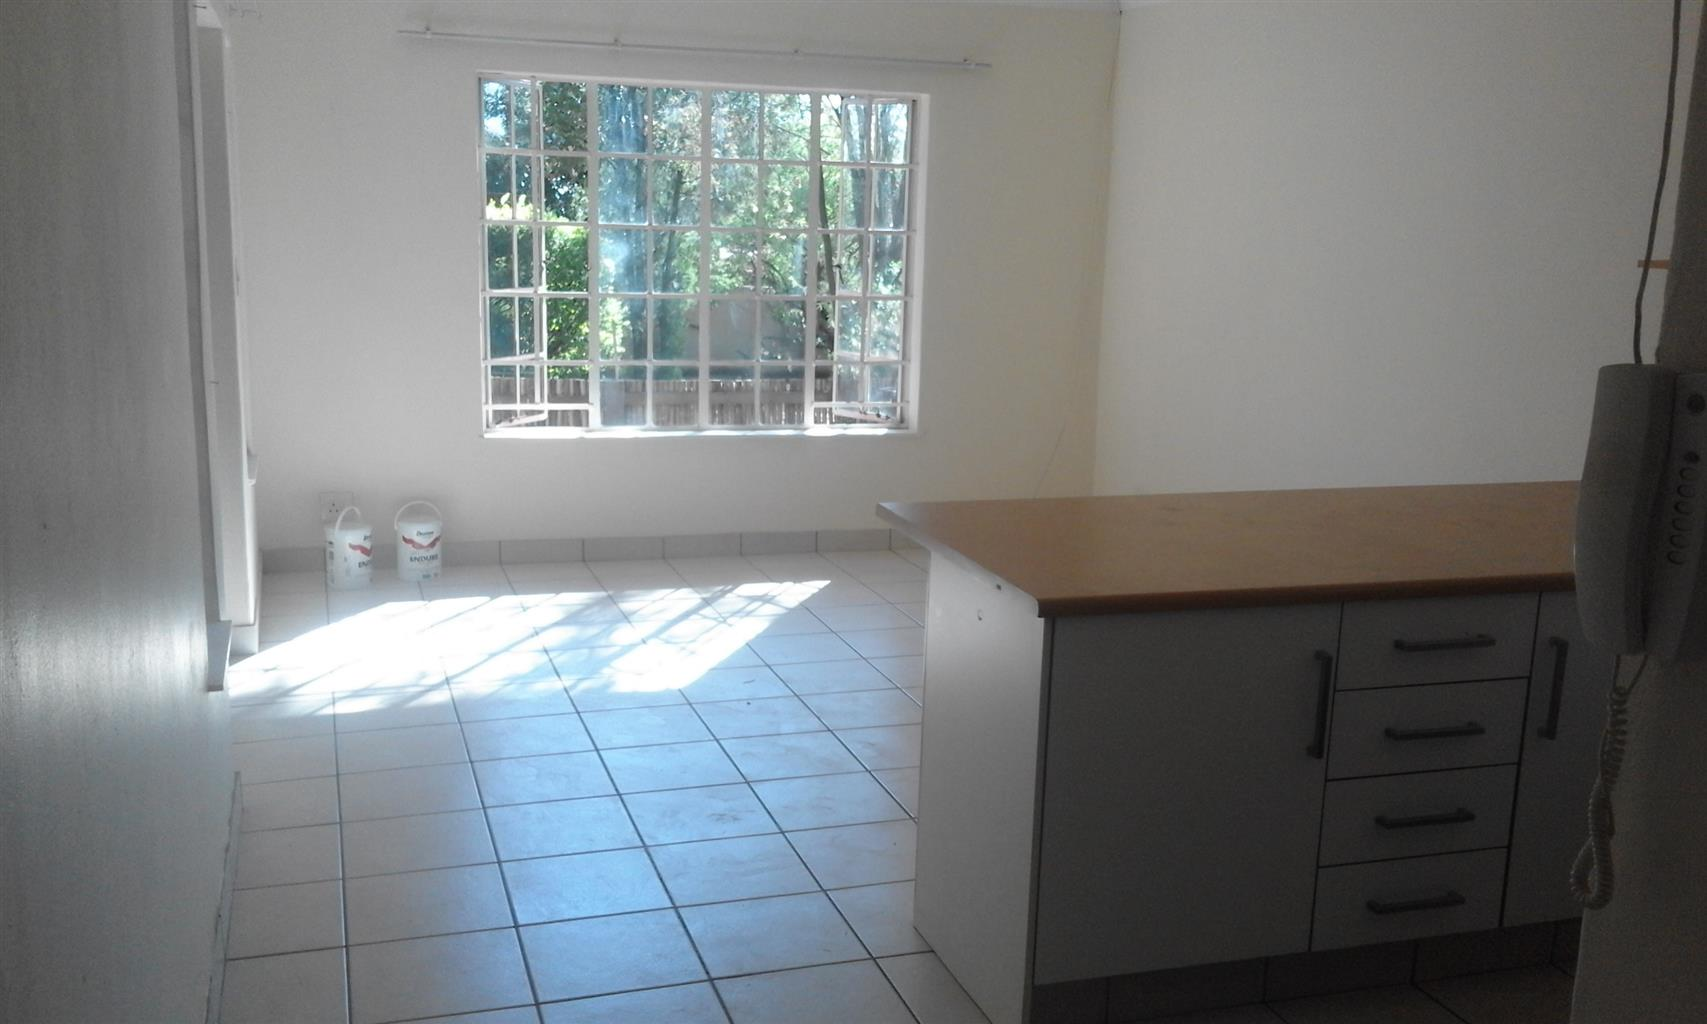 Cottage to let in quiet area, Ferndale, R.6500 per month incl Electricity & Water